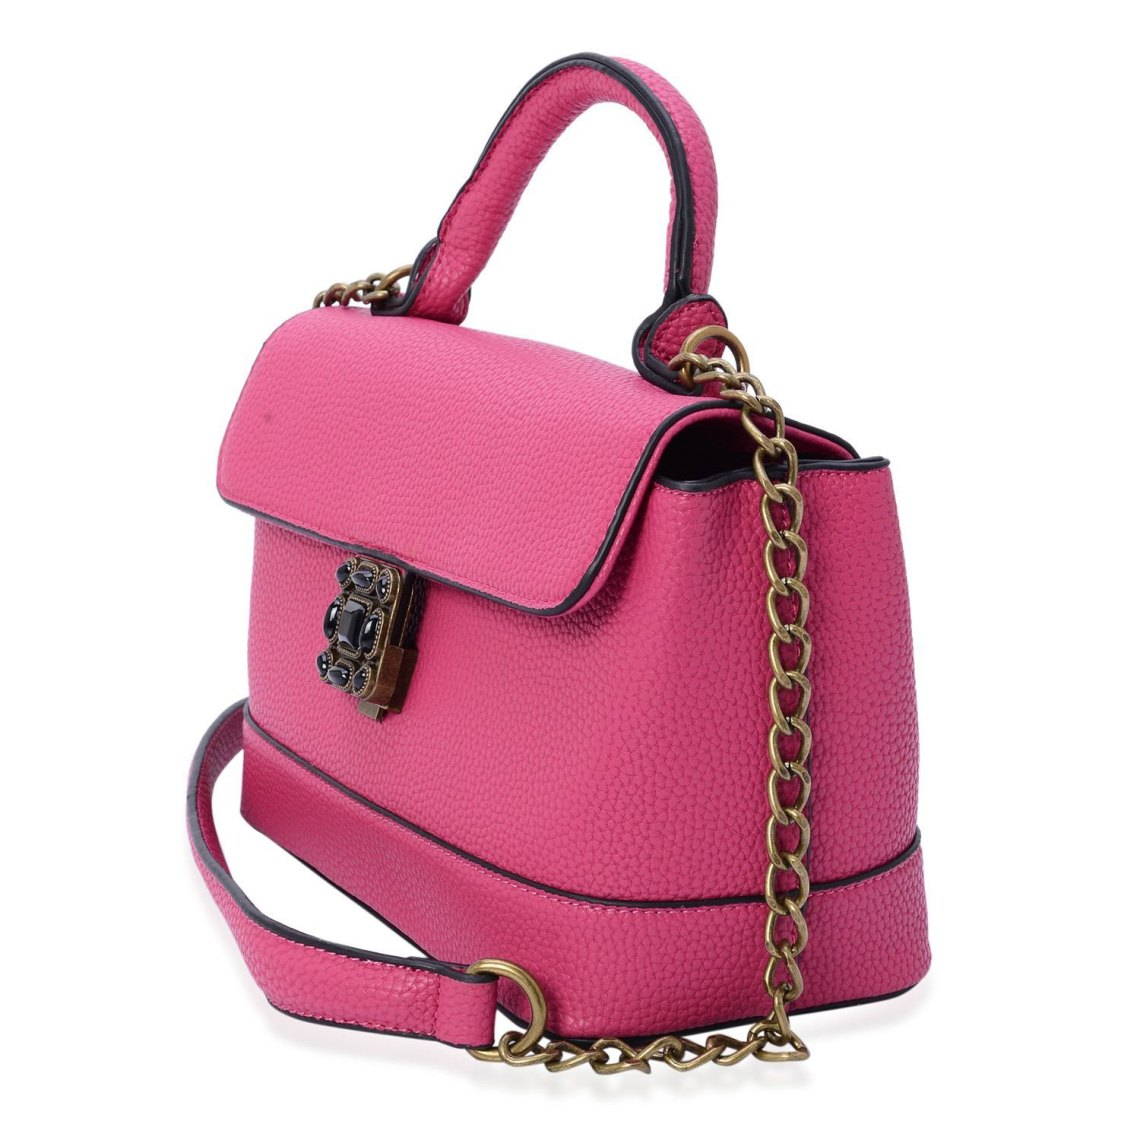 J Francis - Fuchsia Faux Leather Handbag